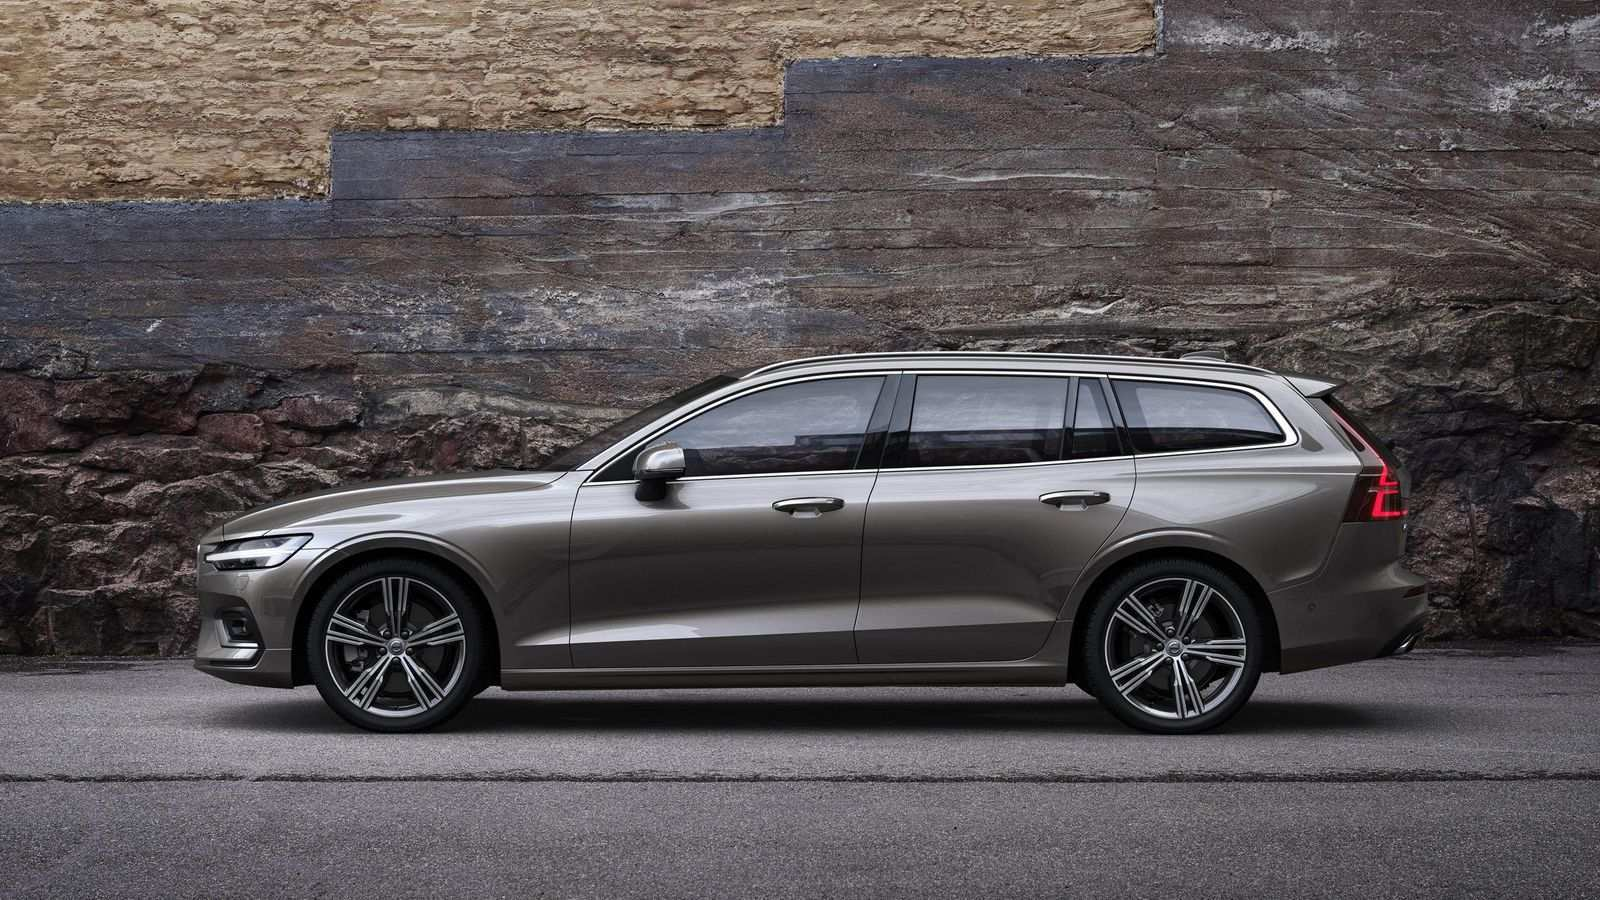 78 All New Volvo 2019 Electric Hybrid Redesign and Concept with Volvo 2019 Electric Hybrid